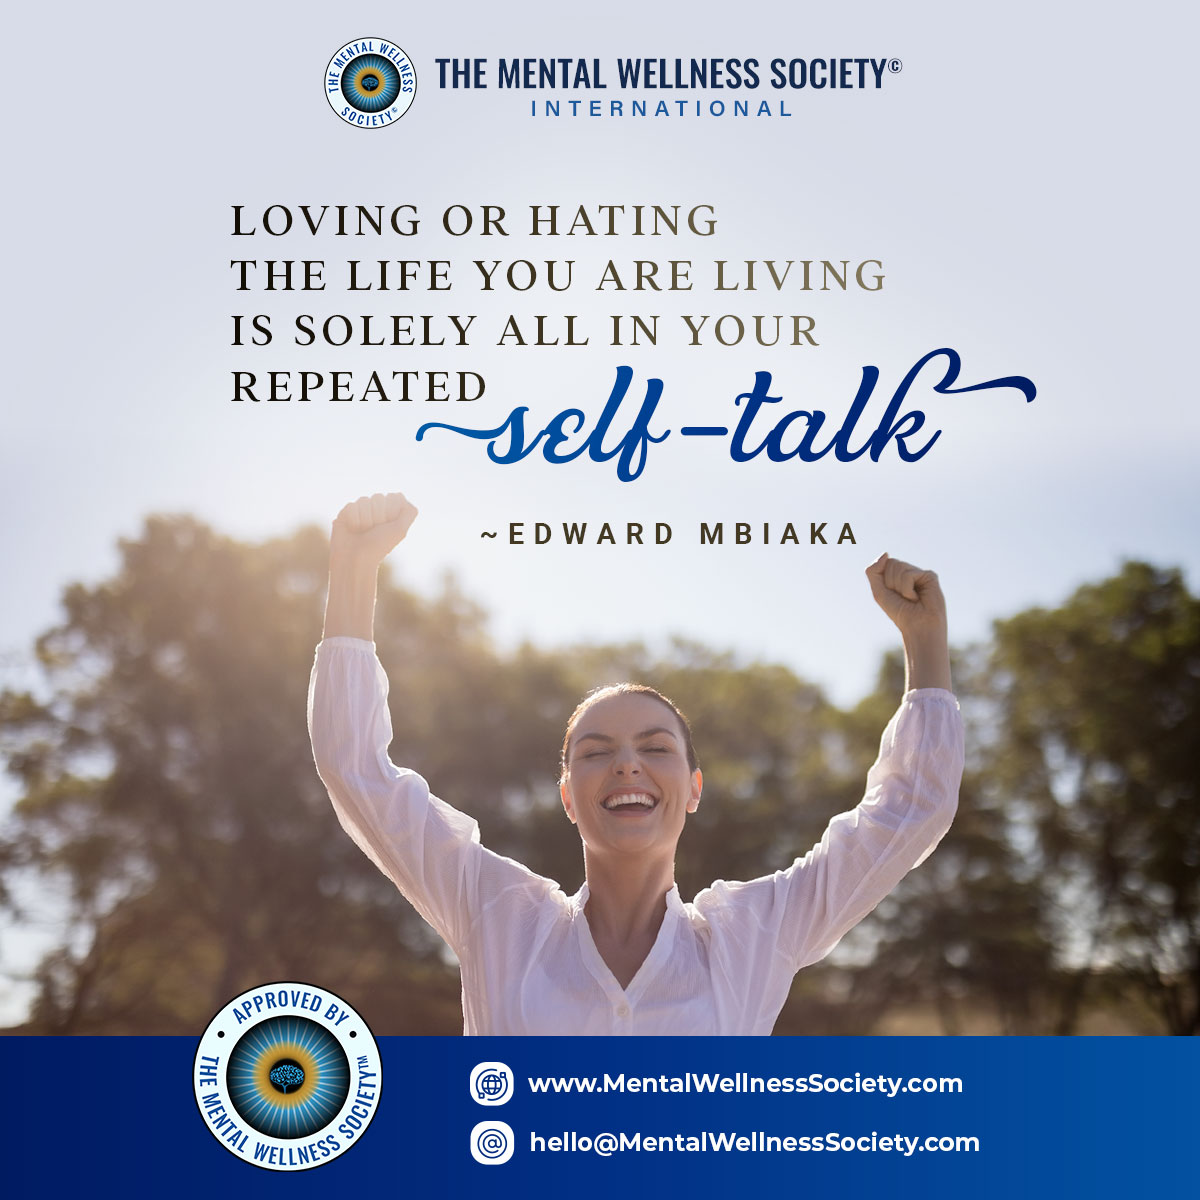 Loving or hating the life you are living is solely all in your repeated self-talk